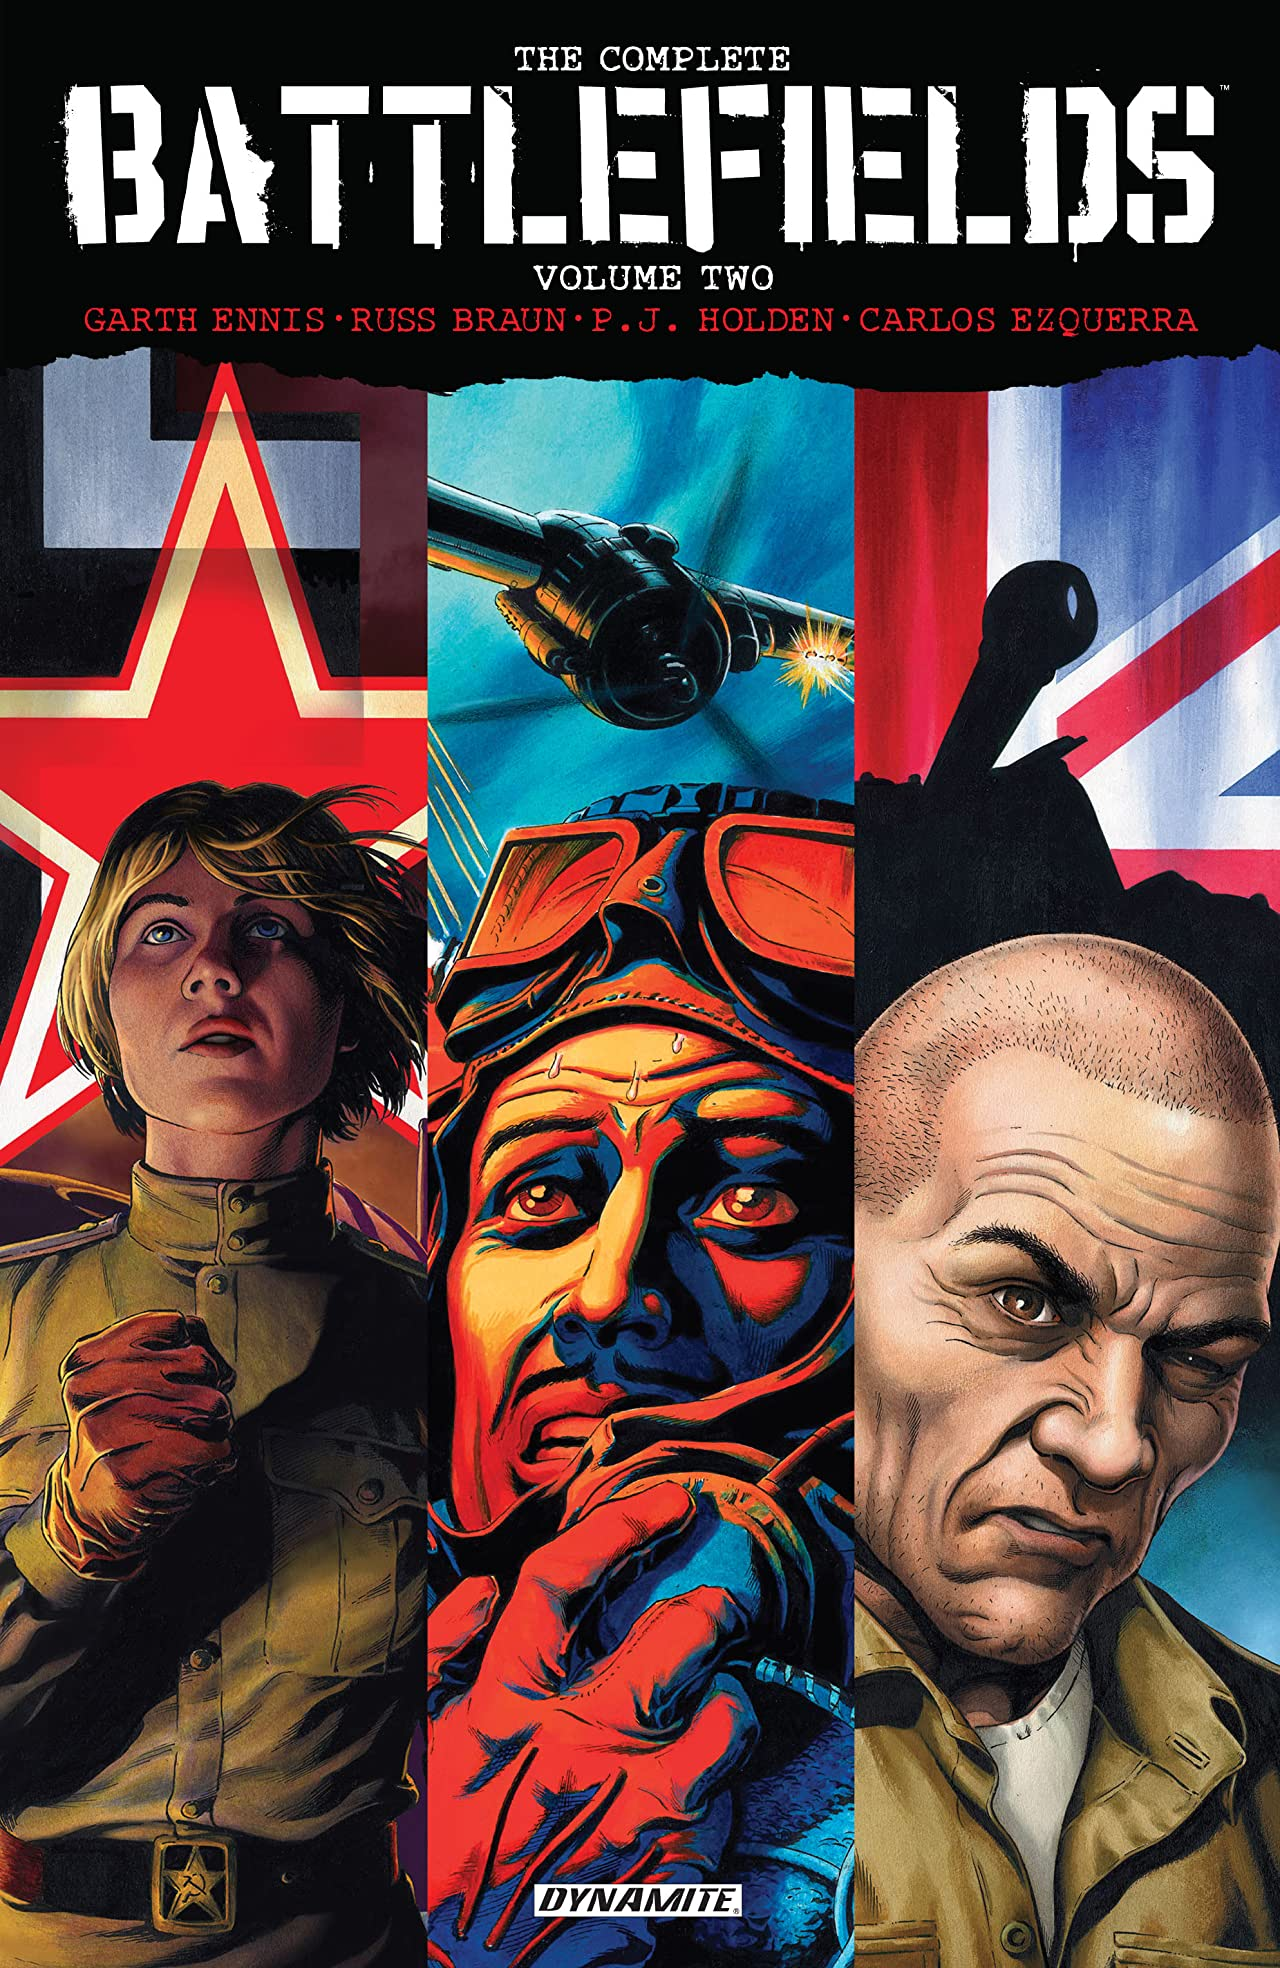 Garth Ennis' Complete Battlefields Vol. 2